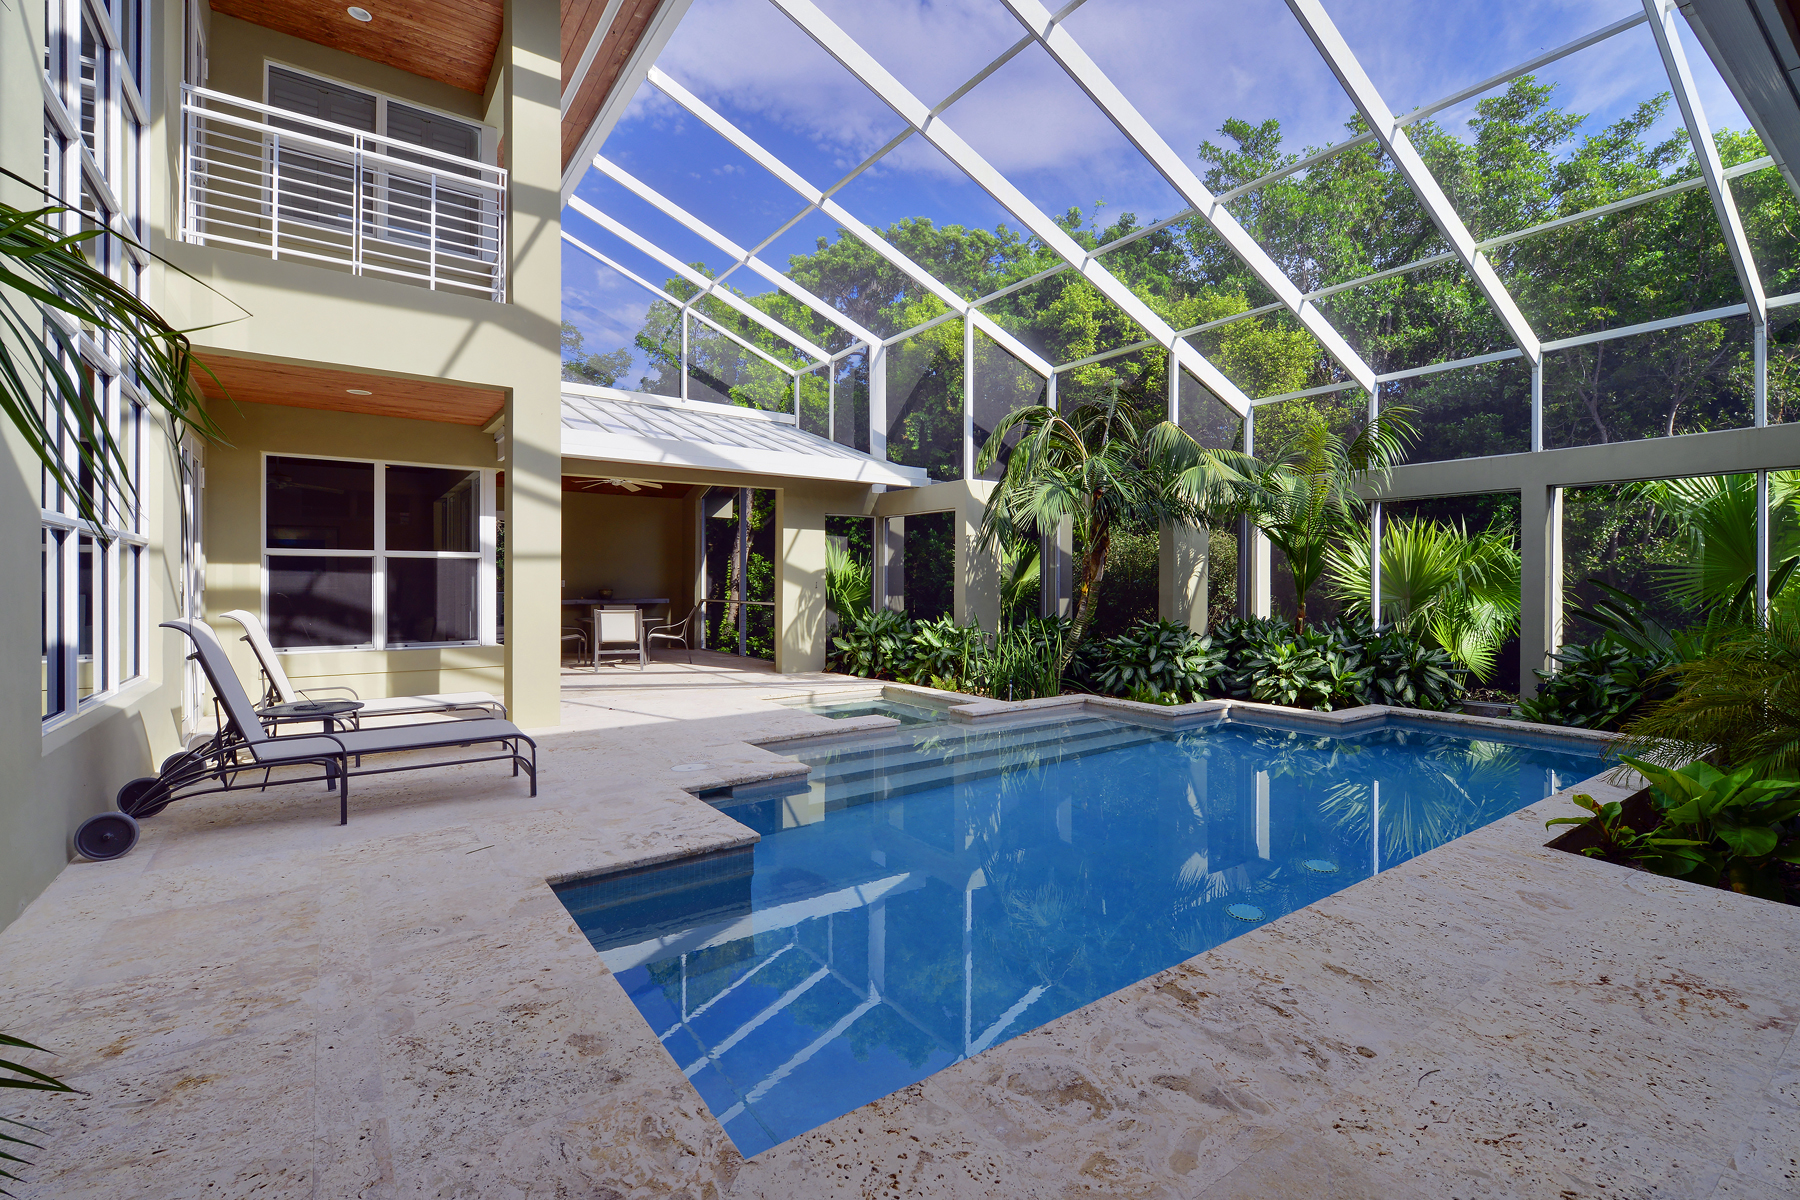 Single Family Home for Sale at Panoramic Golf and Lake Views at Ocean Reef 437 South Harbor Drive Key Largo, Florida 33037 United States